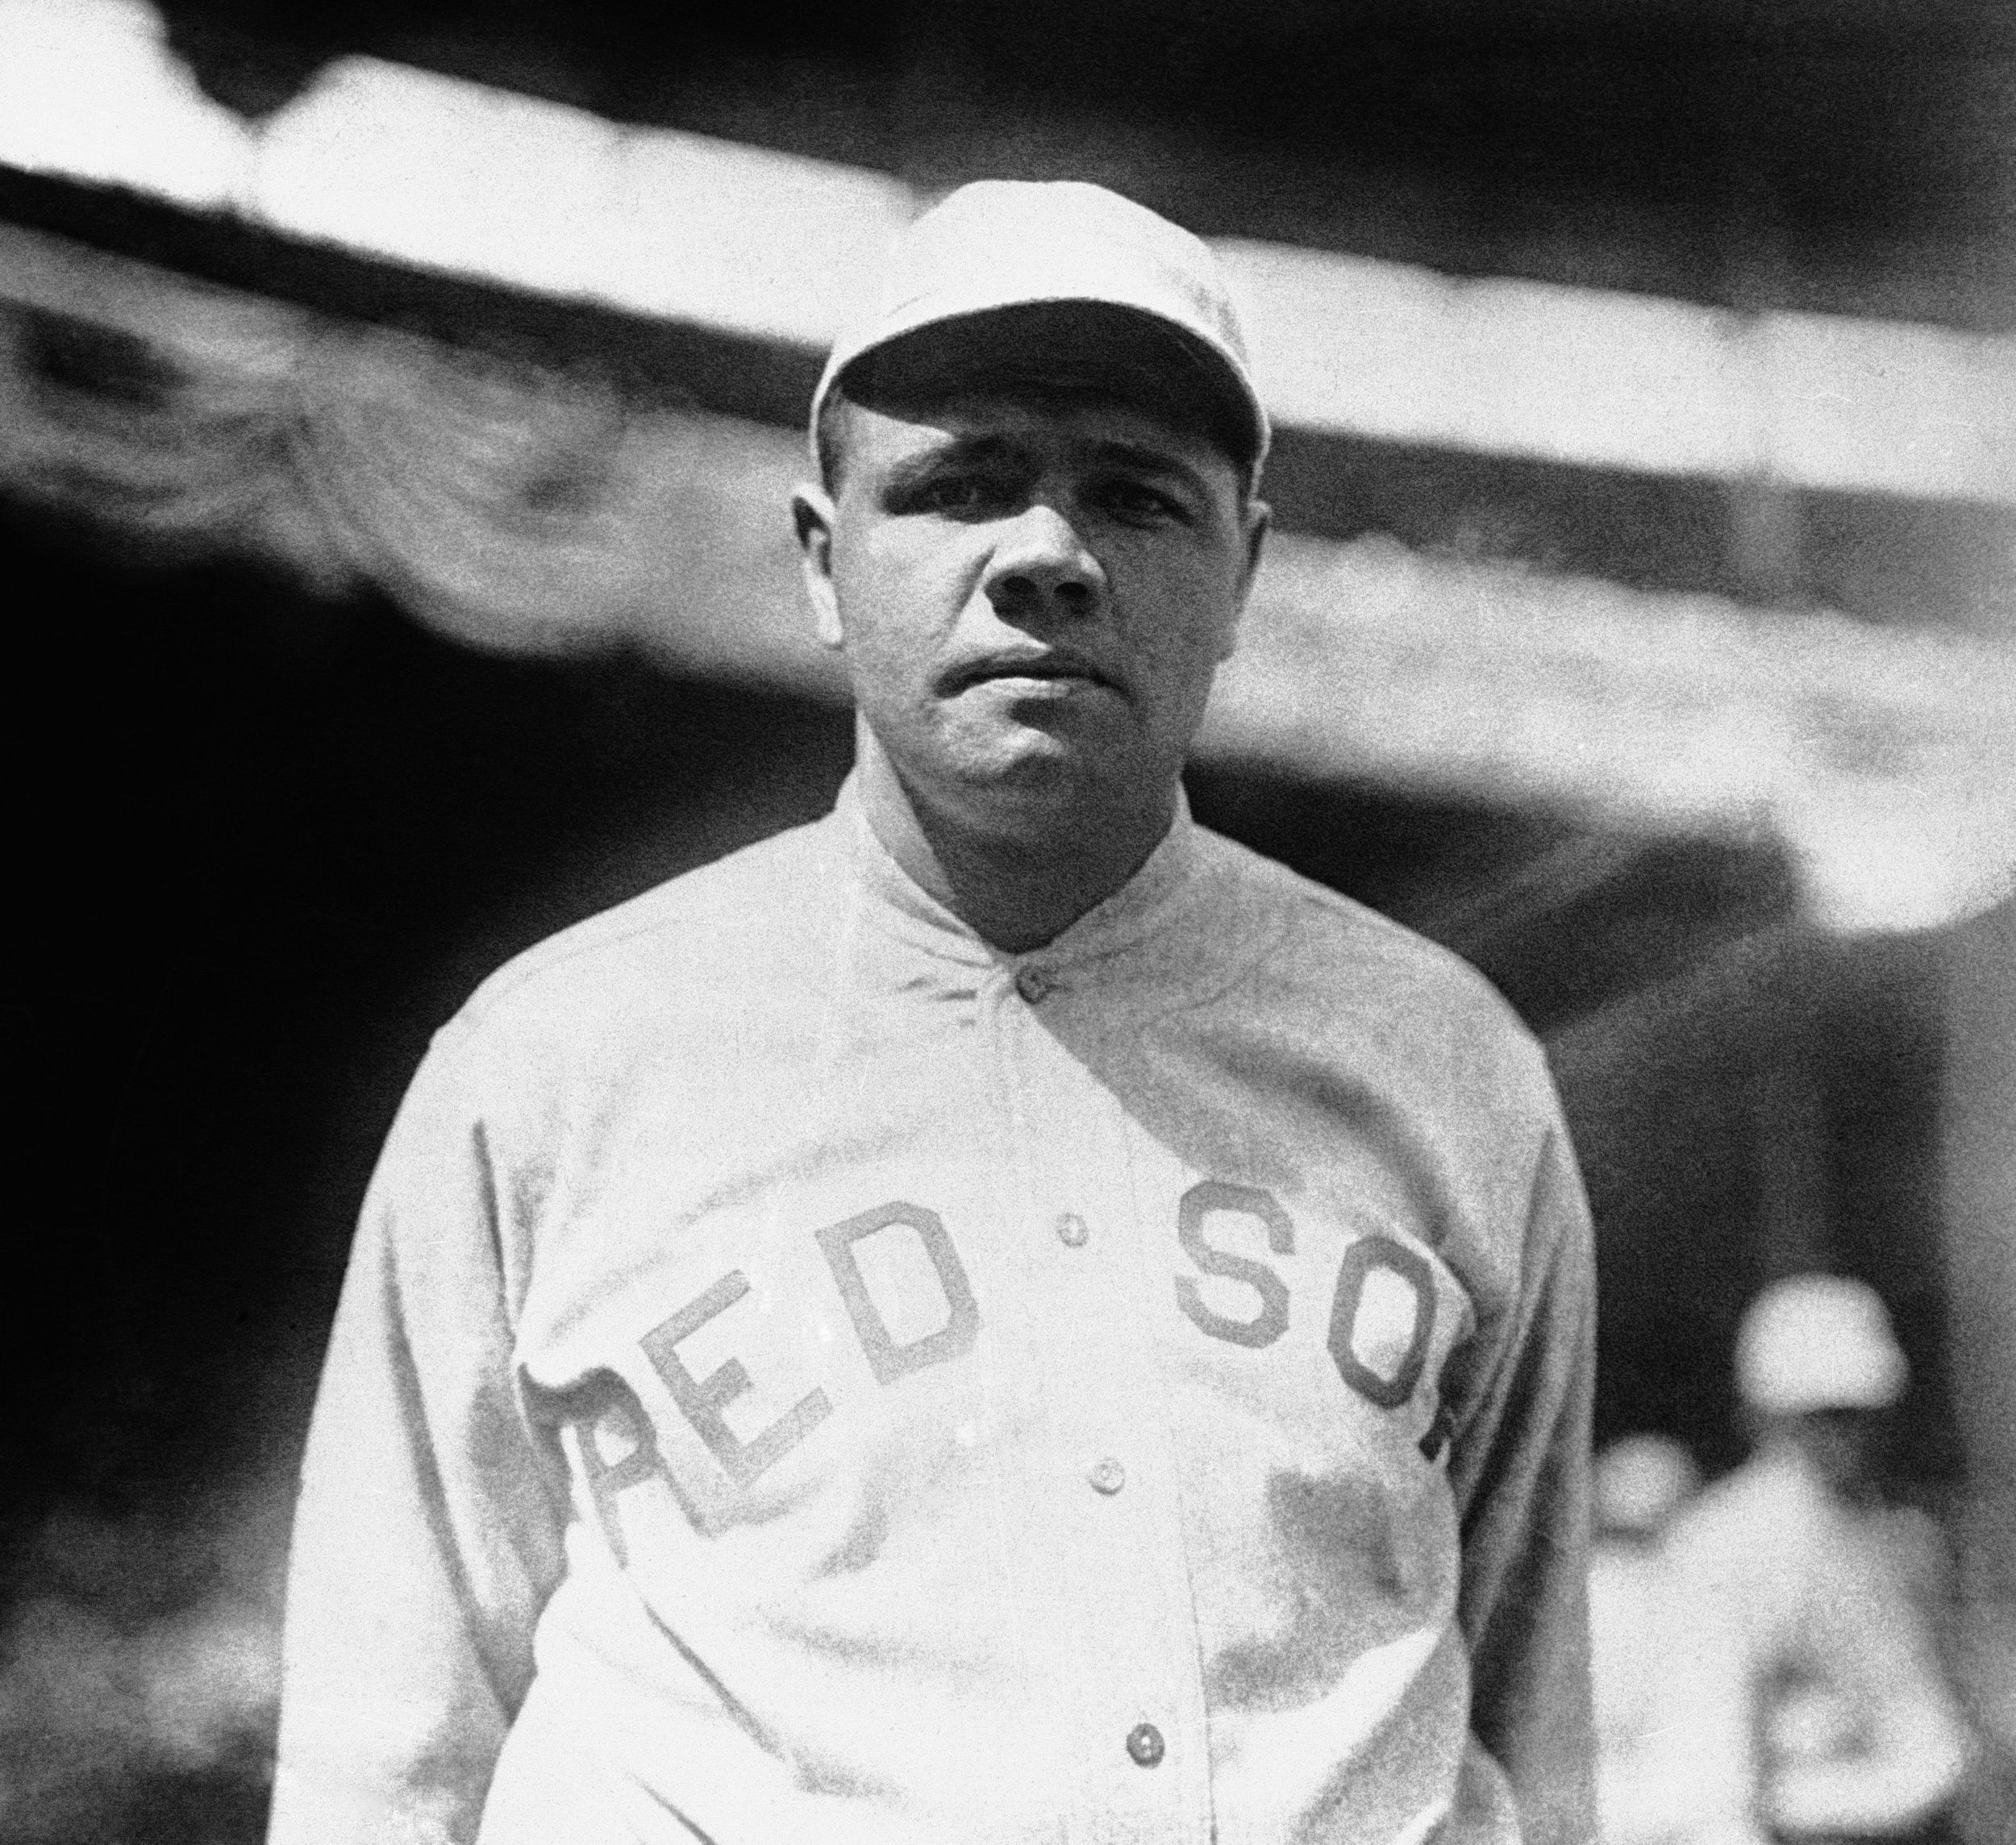 On this day in history: Babe Ruth hits first of 714 home ... Babe Ruth